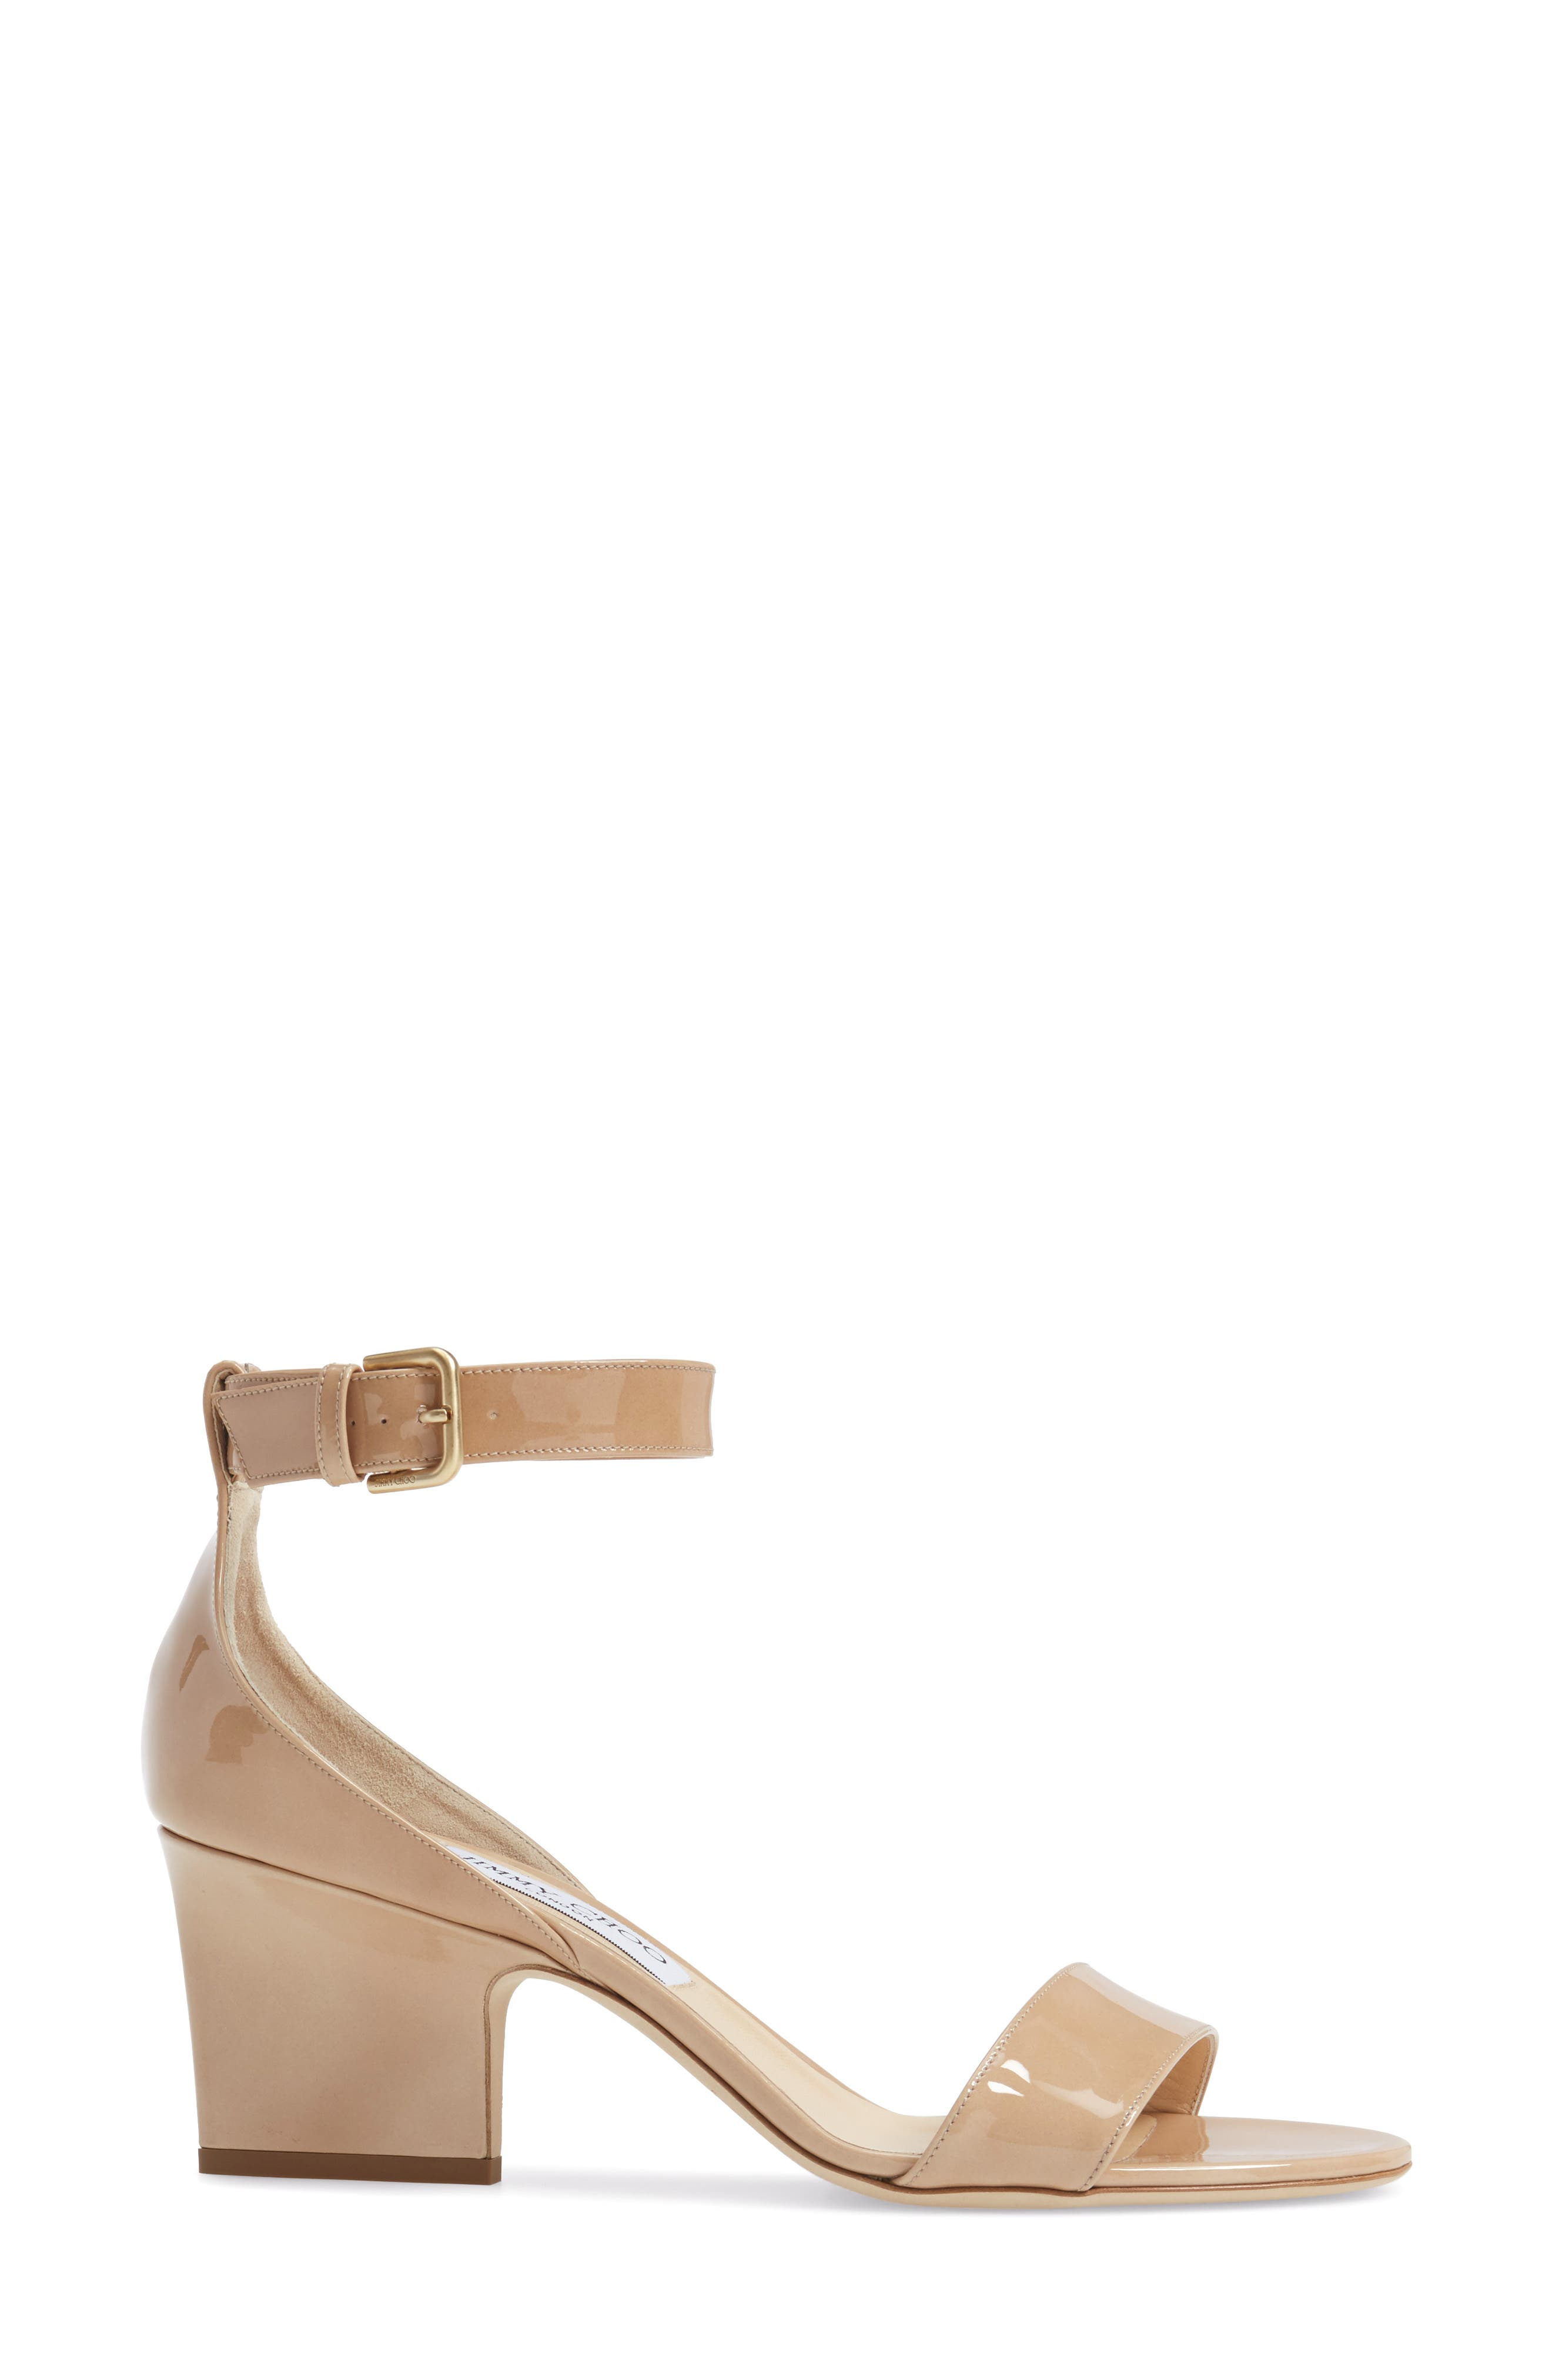 Edina Ankle Strap Sandal,                             Alternate thumbnail 3, color,                             NUDE PATENT